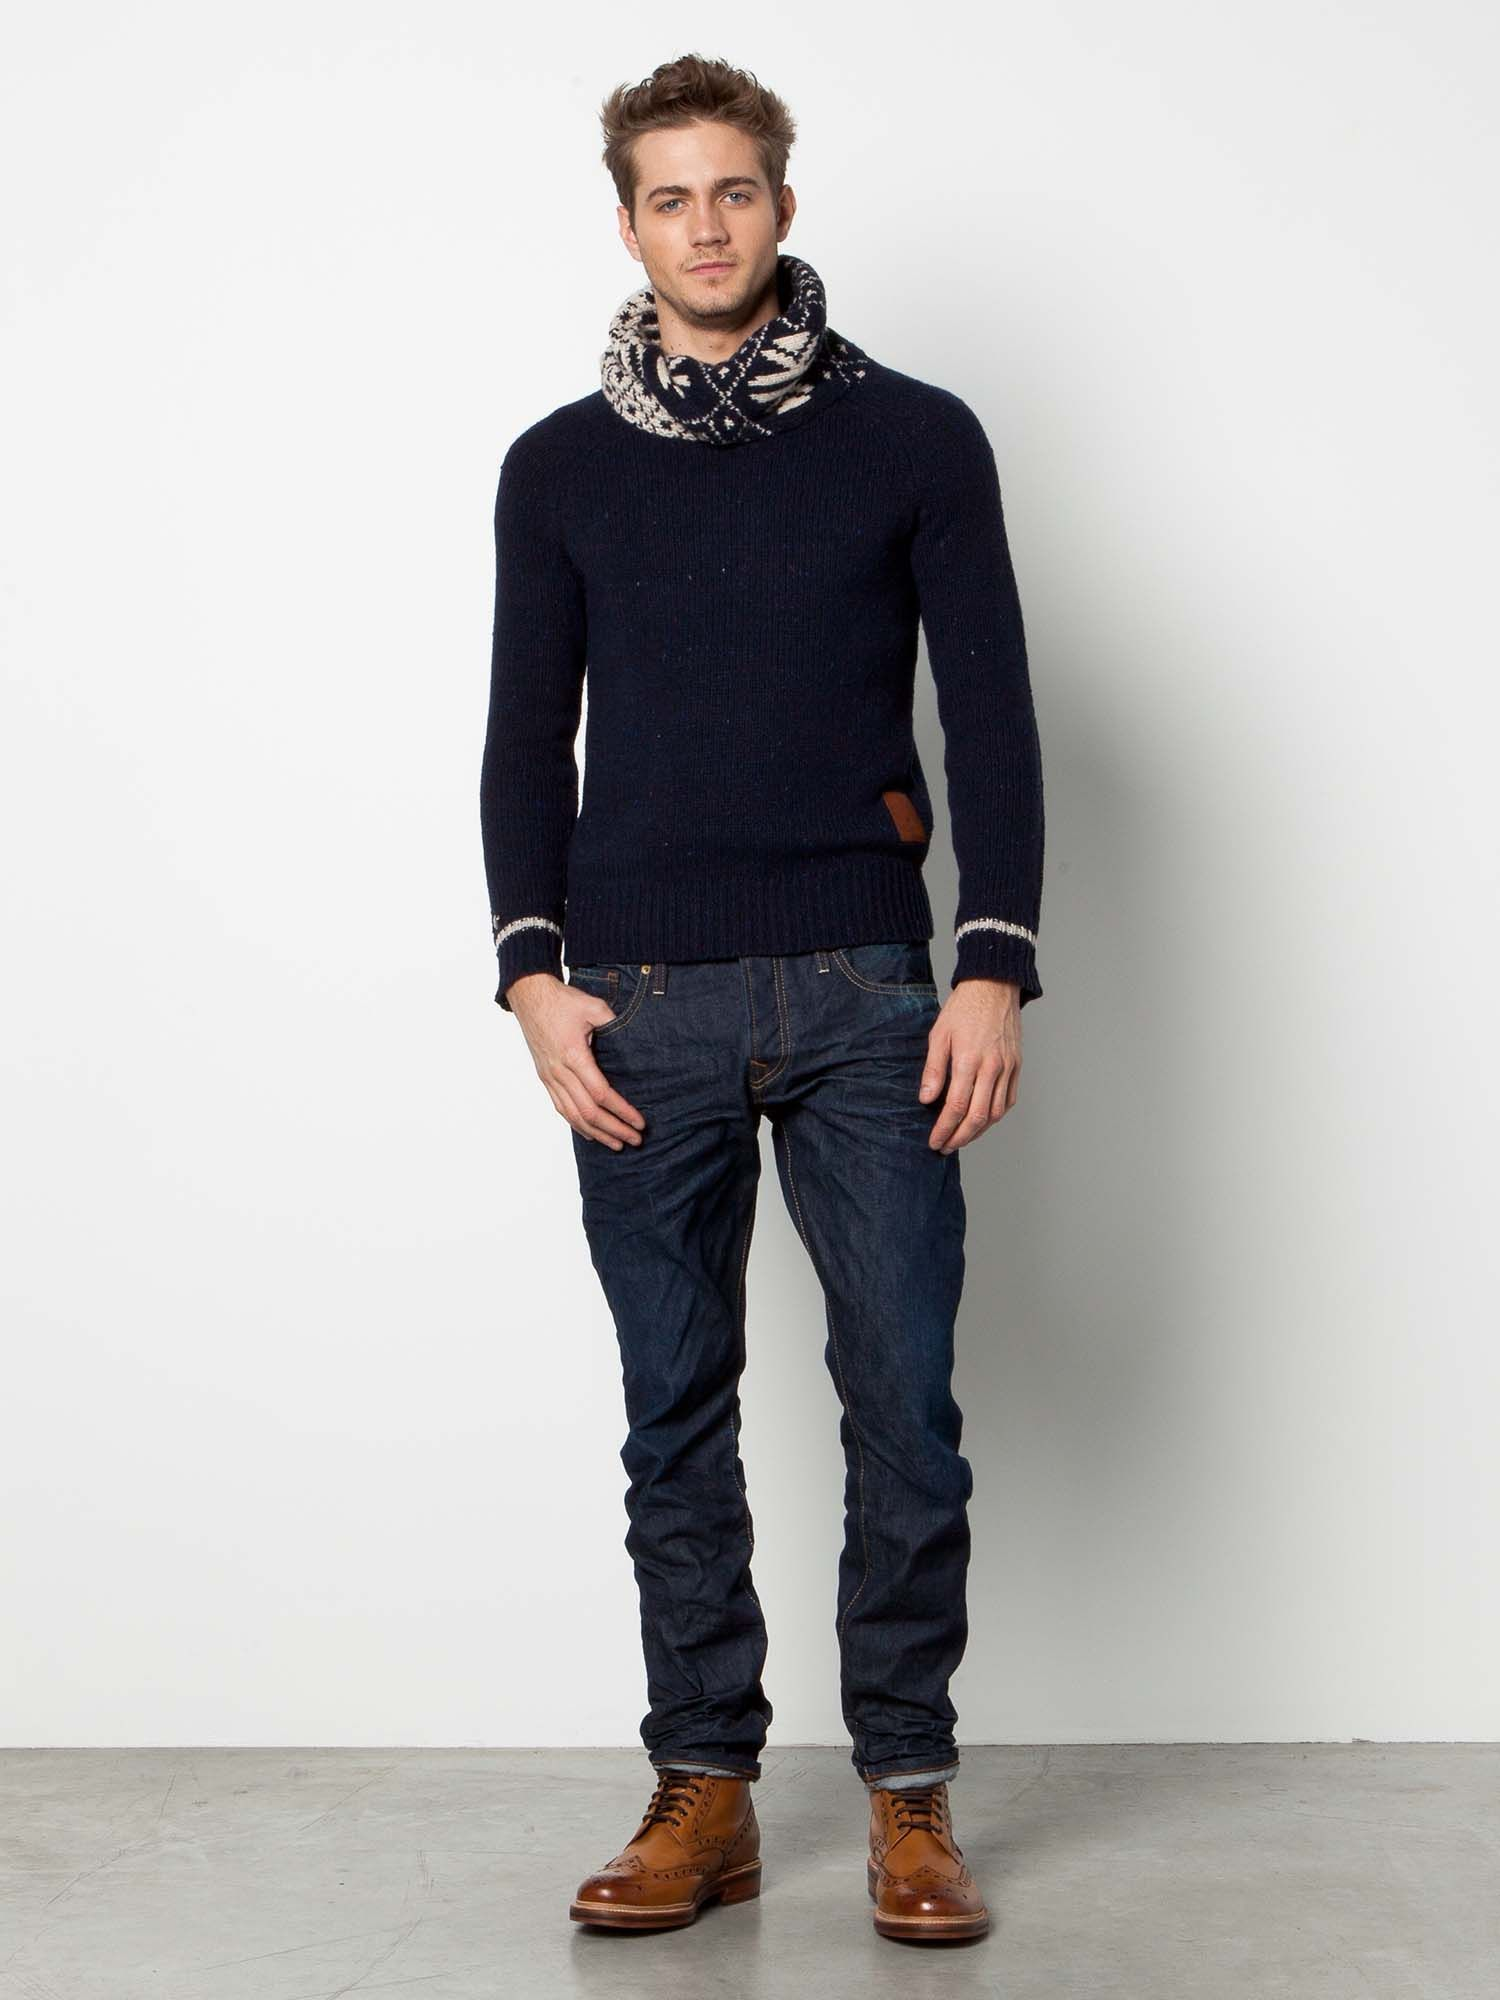 Navy Sweater with Patterned Turtleneck Dark Jeans and Wingtip Boots by Scotch and Soda. Menu0026#39;s ...